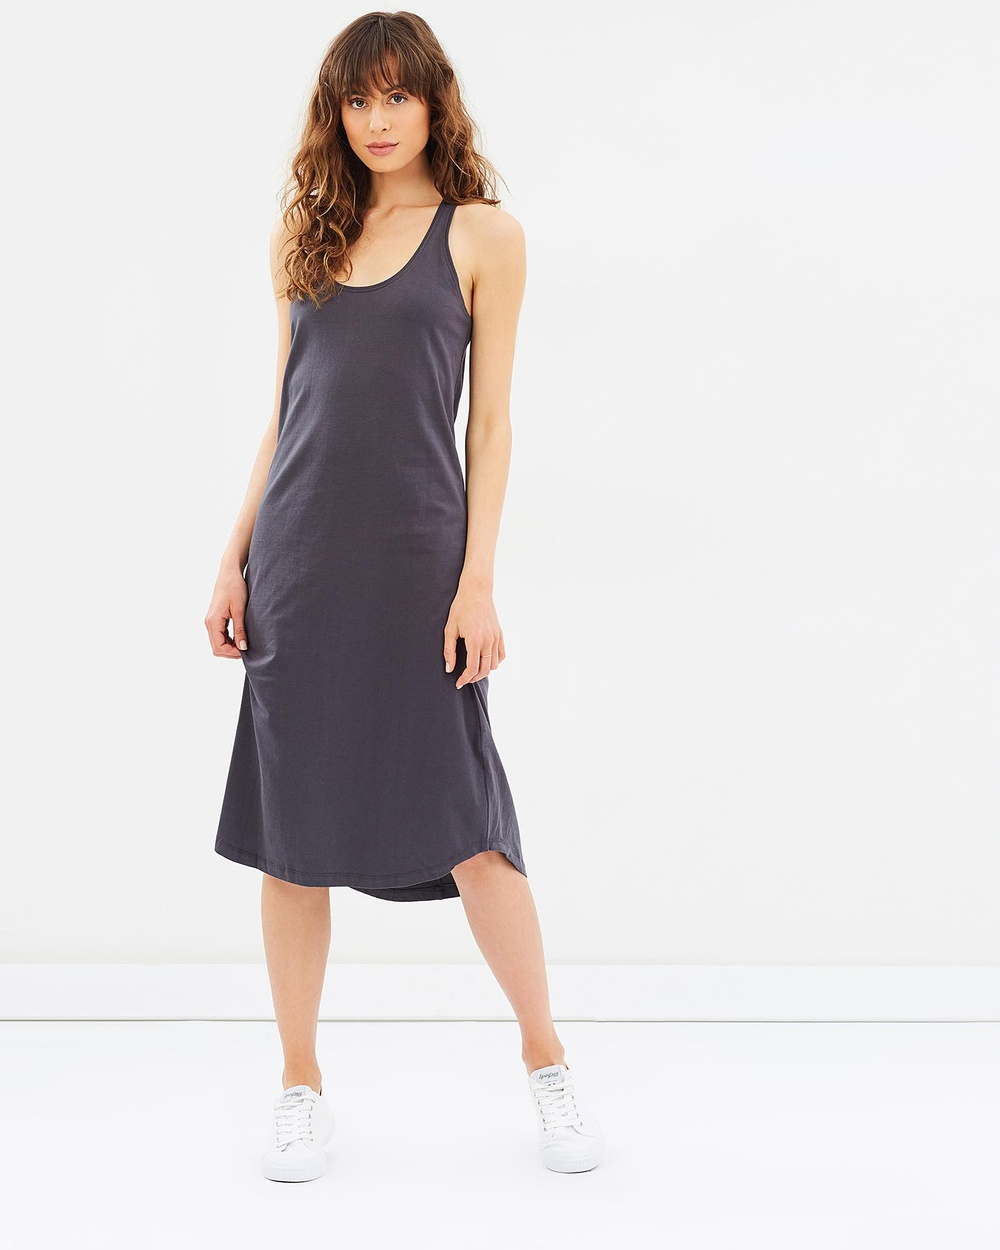 Cloth & Co. Organic Cotton Singlet Dress Dresses Navy Organic Cotton Singlet Dress